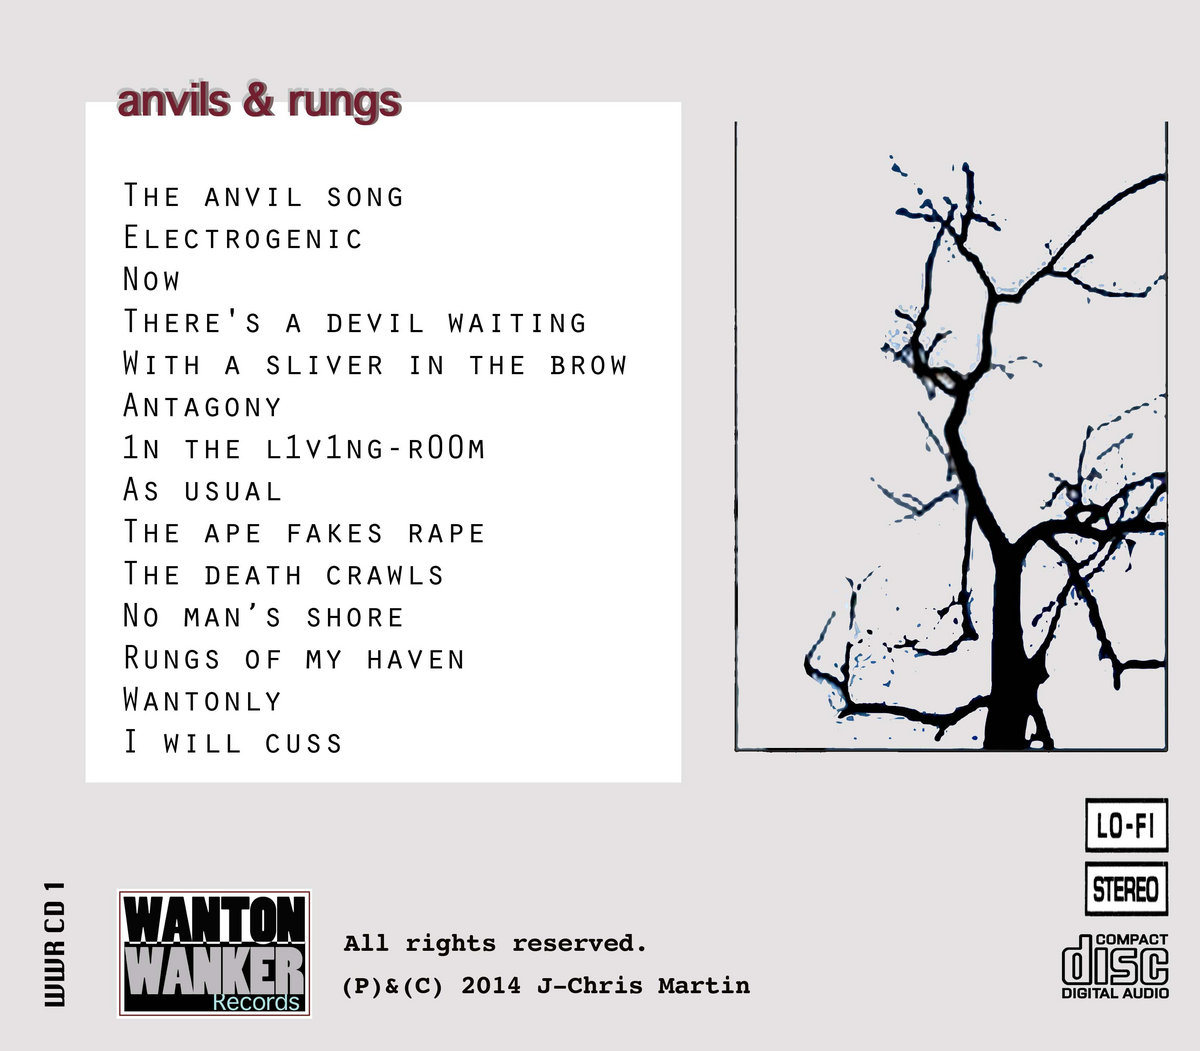 The Anvil Song